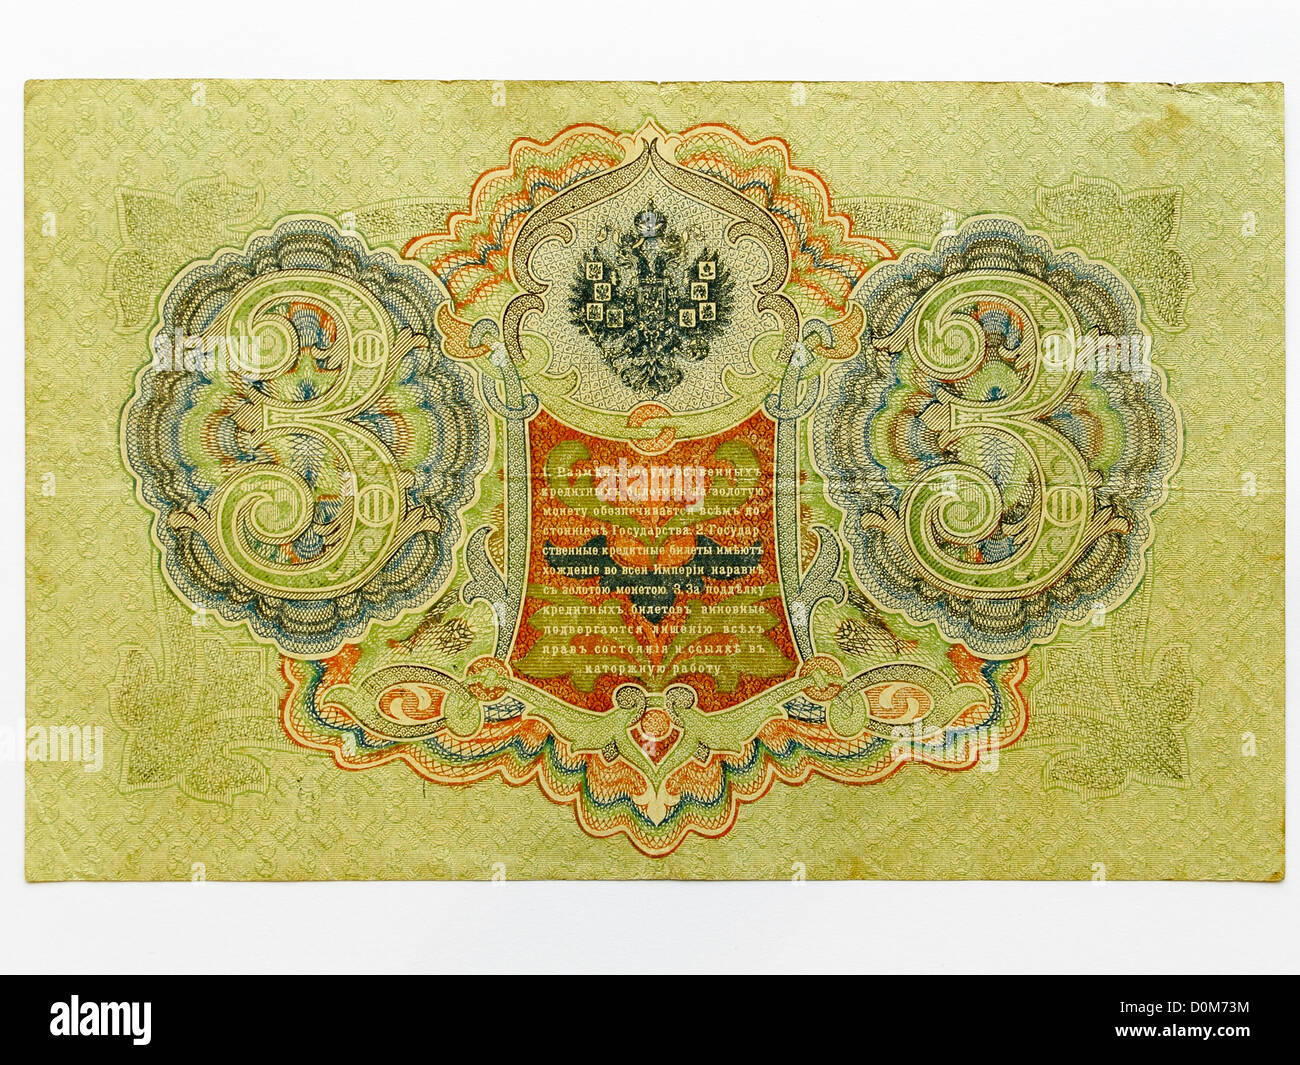 3 three  Rouble Ruble Imperialist Russian banknote 1905 issue - Stock Image